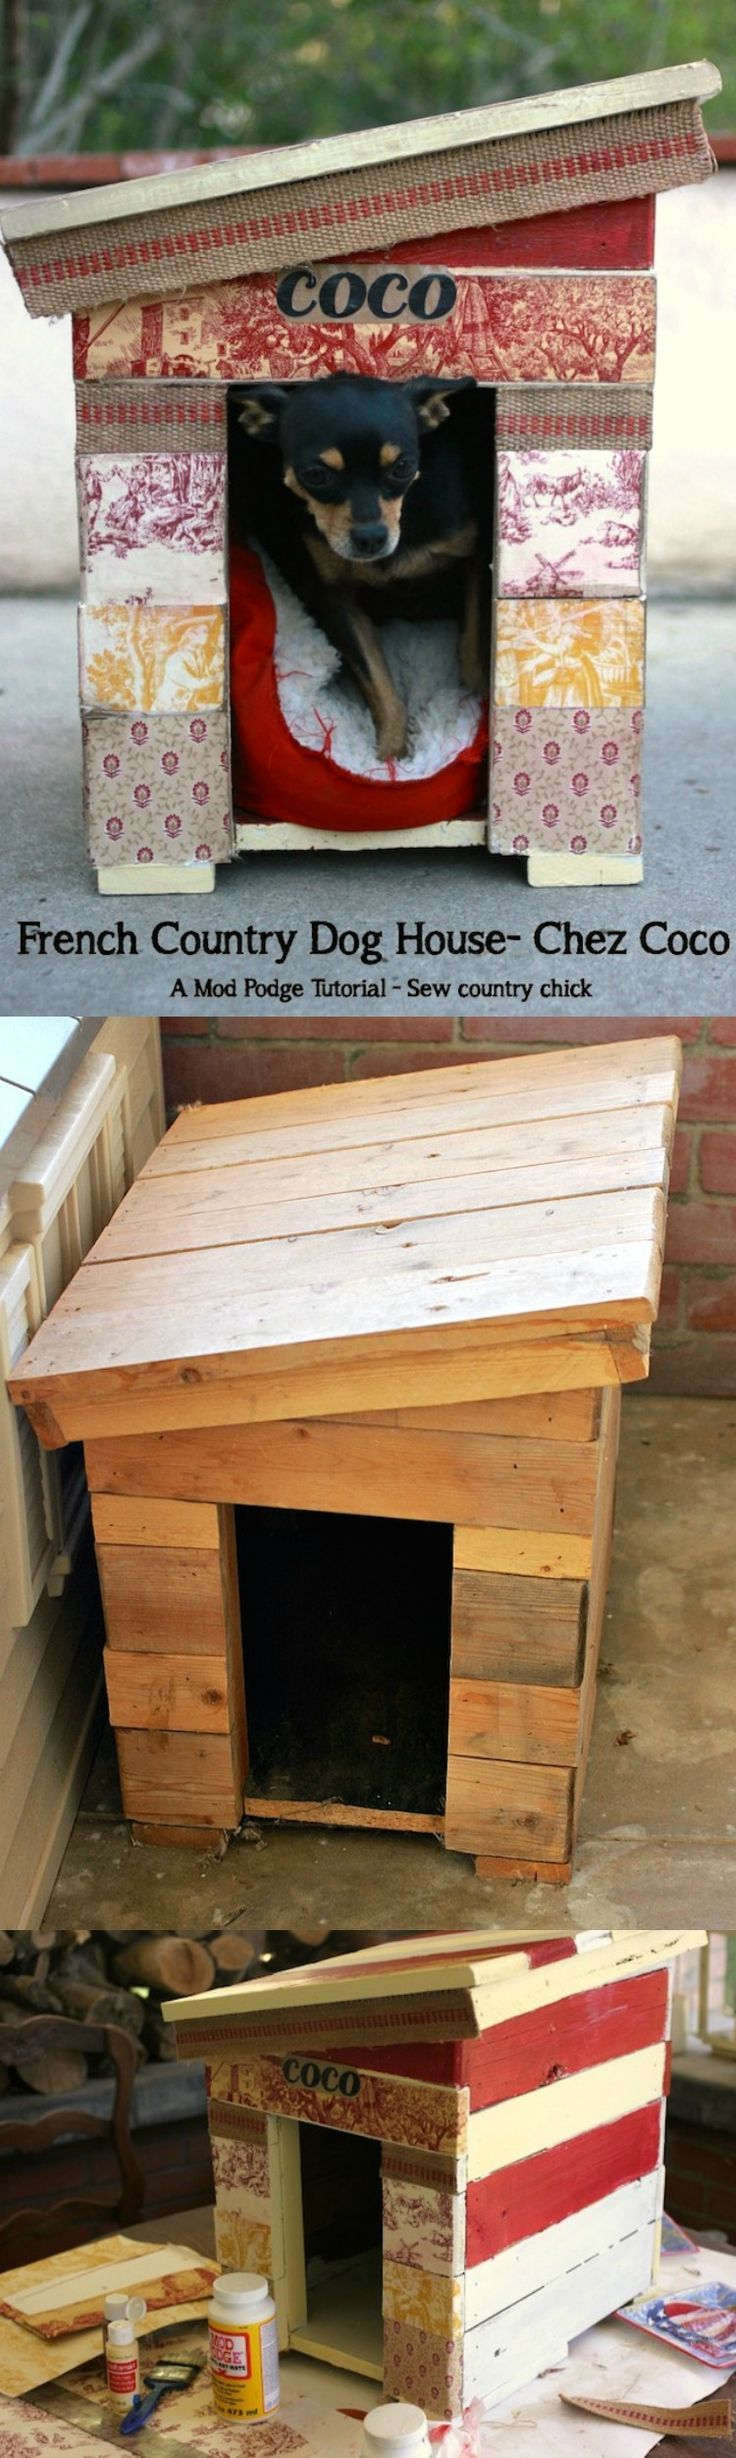 Enter a little Mod Podge, paint, upholstery webbing, and wall paper samples, and voila: a pretty house for my little dog. And I didn't spend anything because I had all the materials on hand!